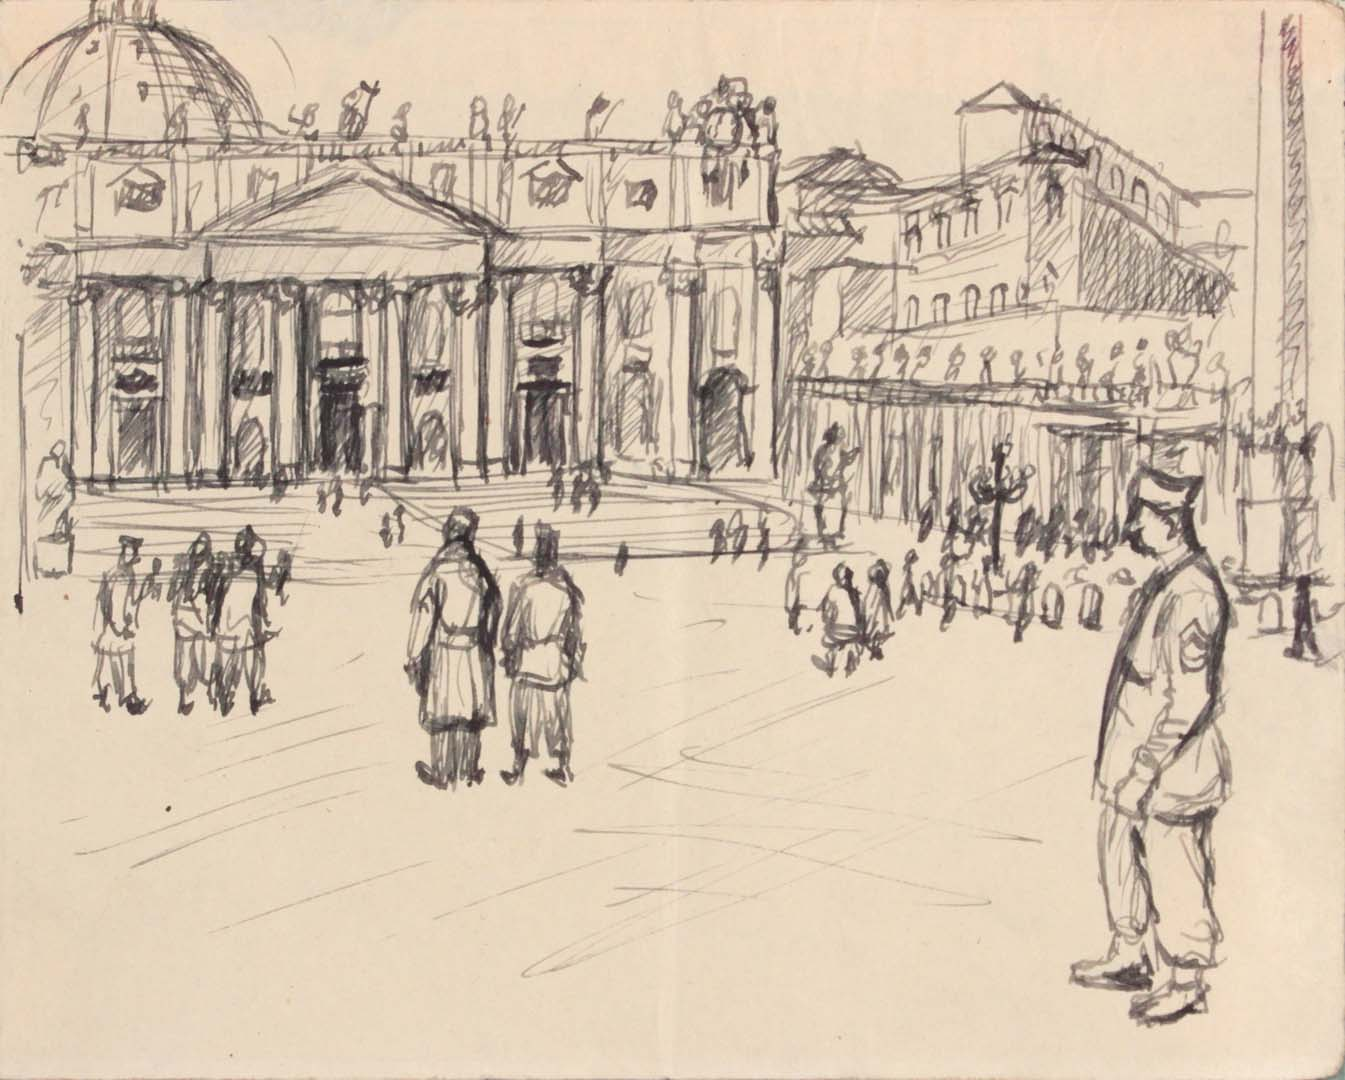 1944 Rome Italy XI Pen and Ink on Paper 4.8125 x 6.0625